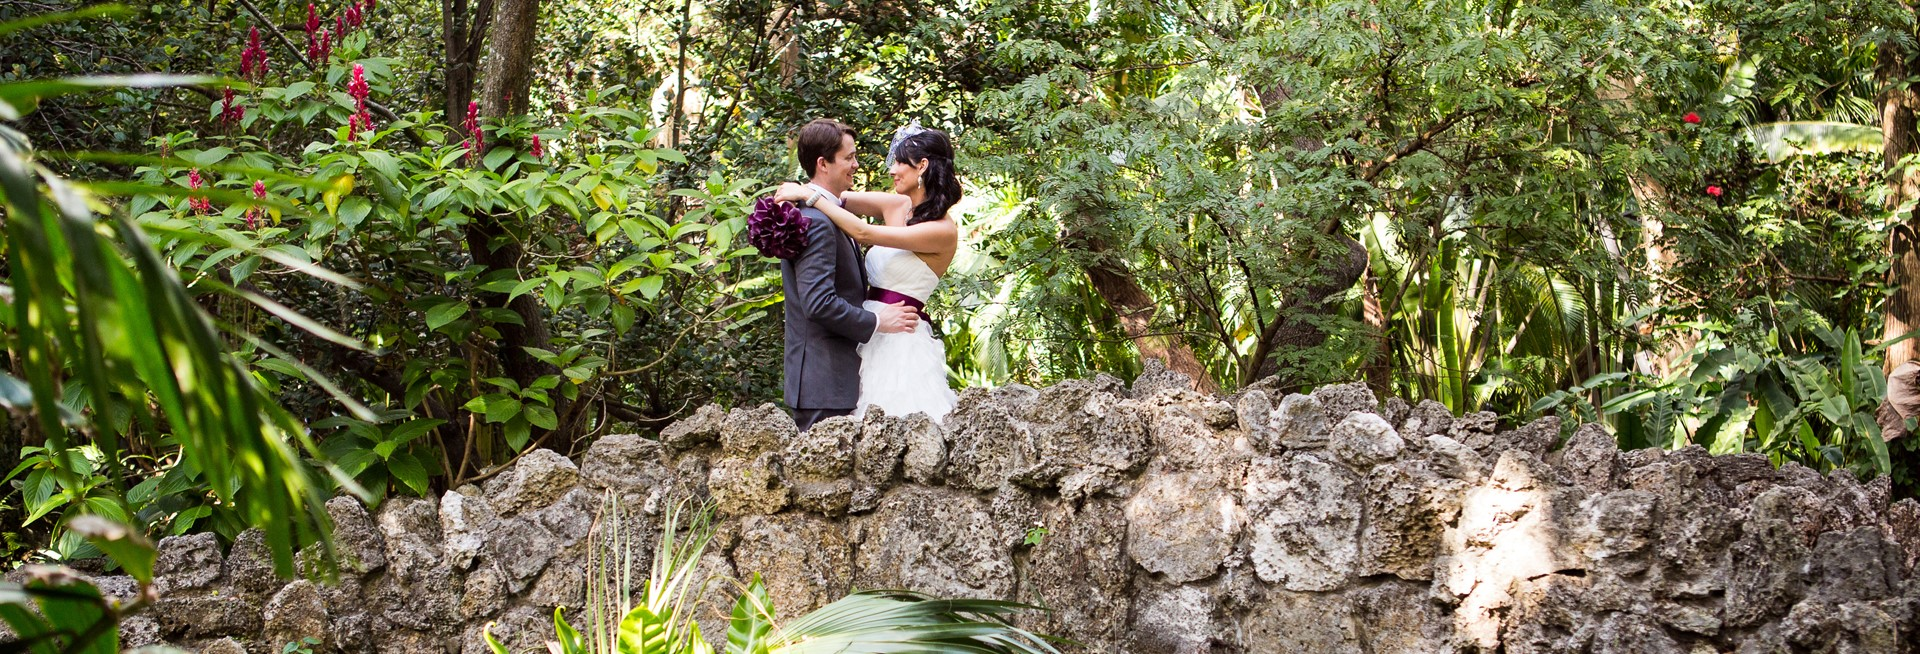 weddind2 bridge